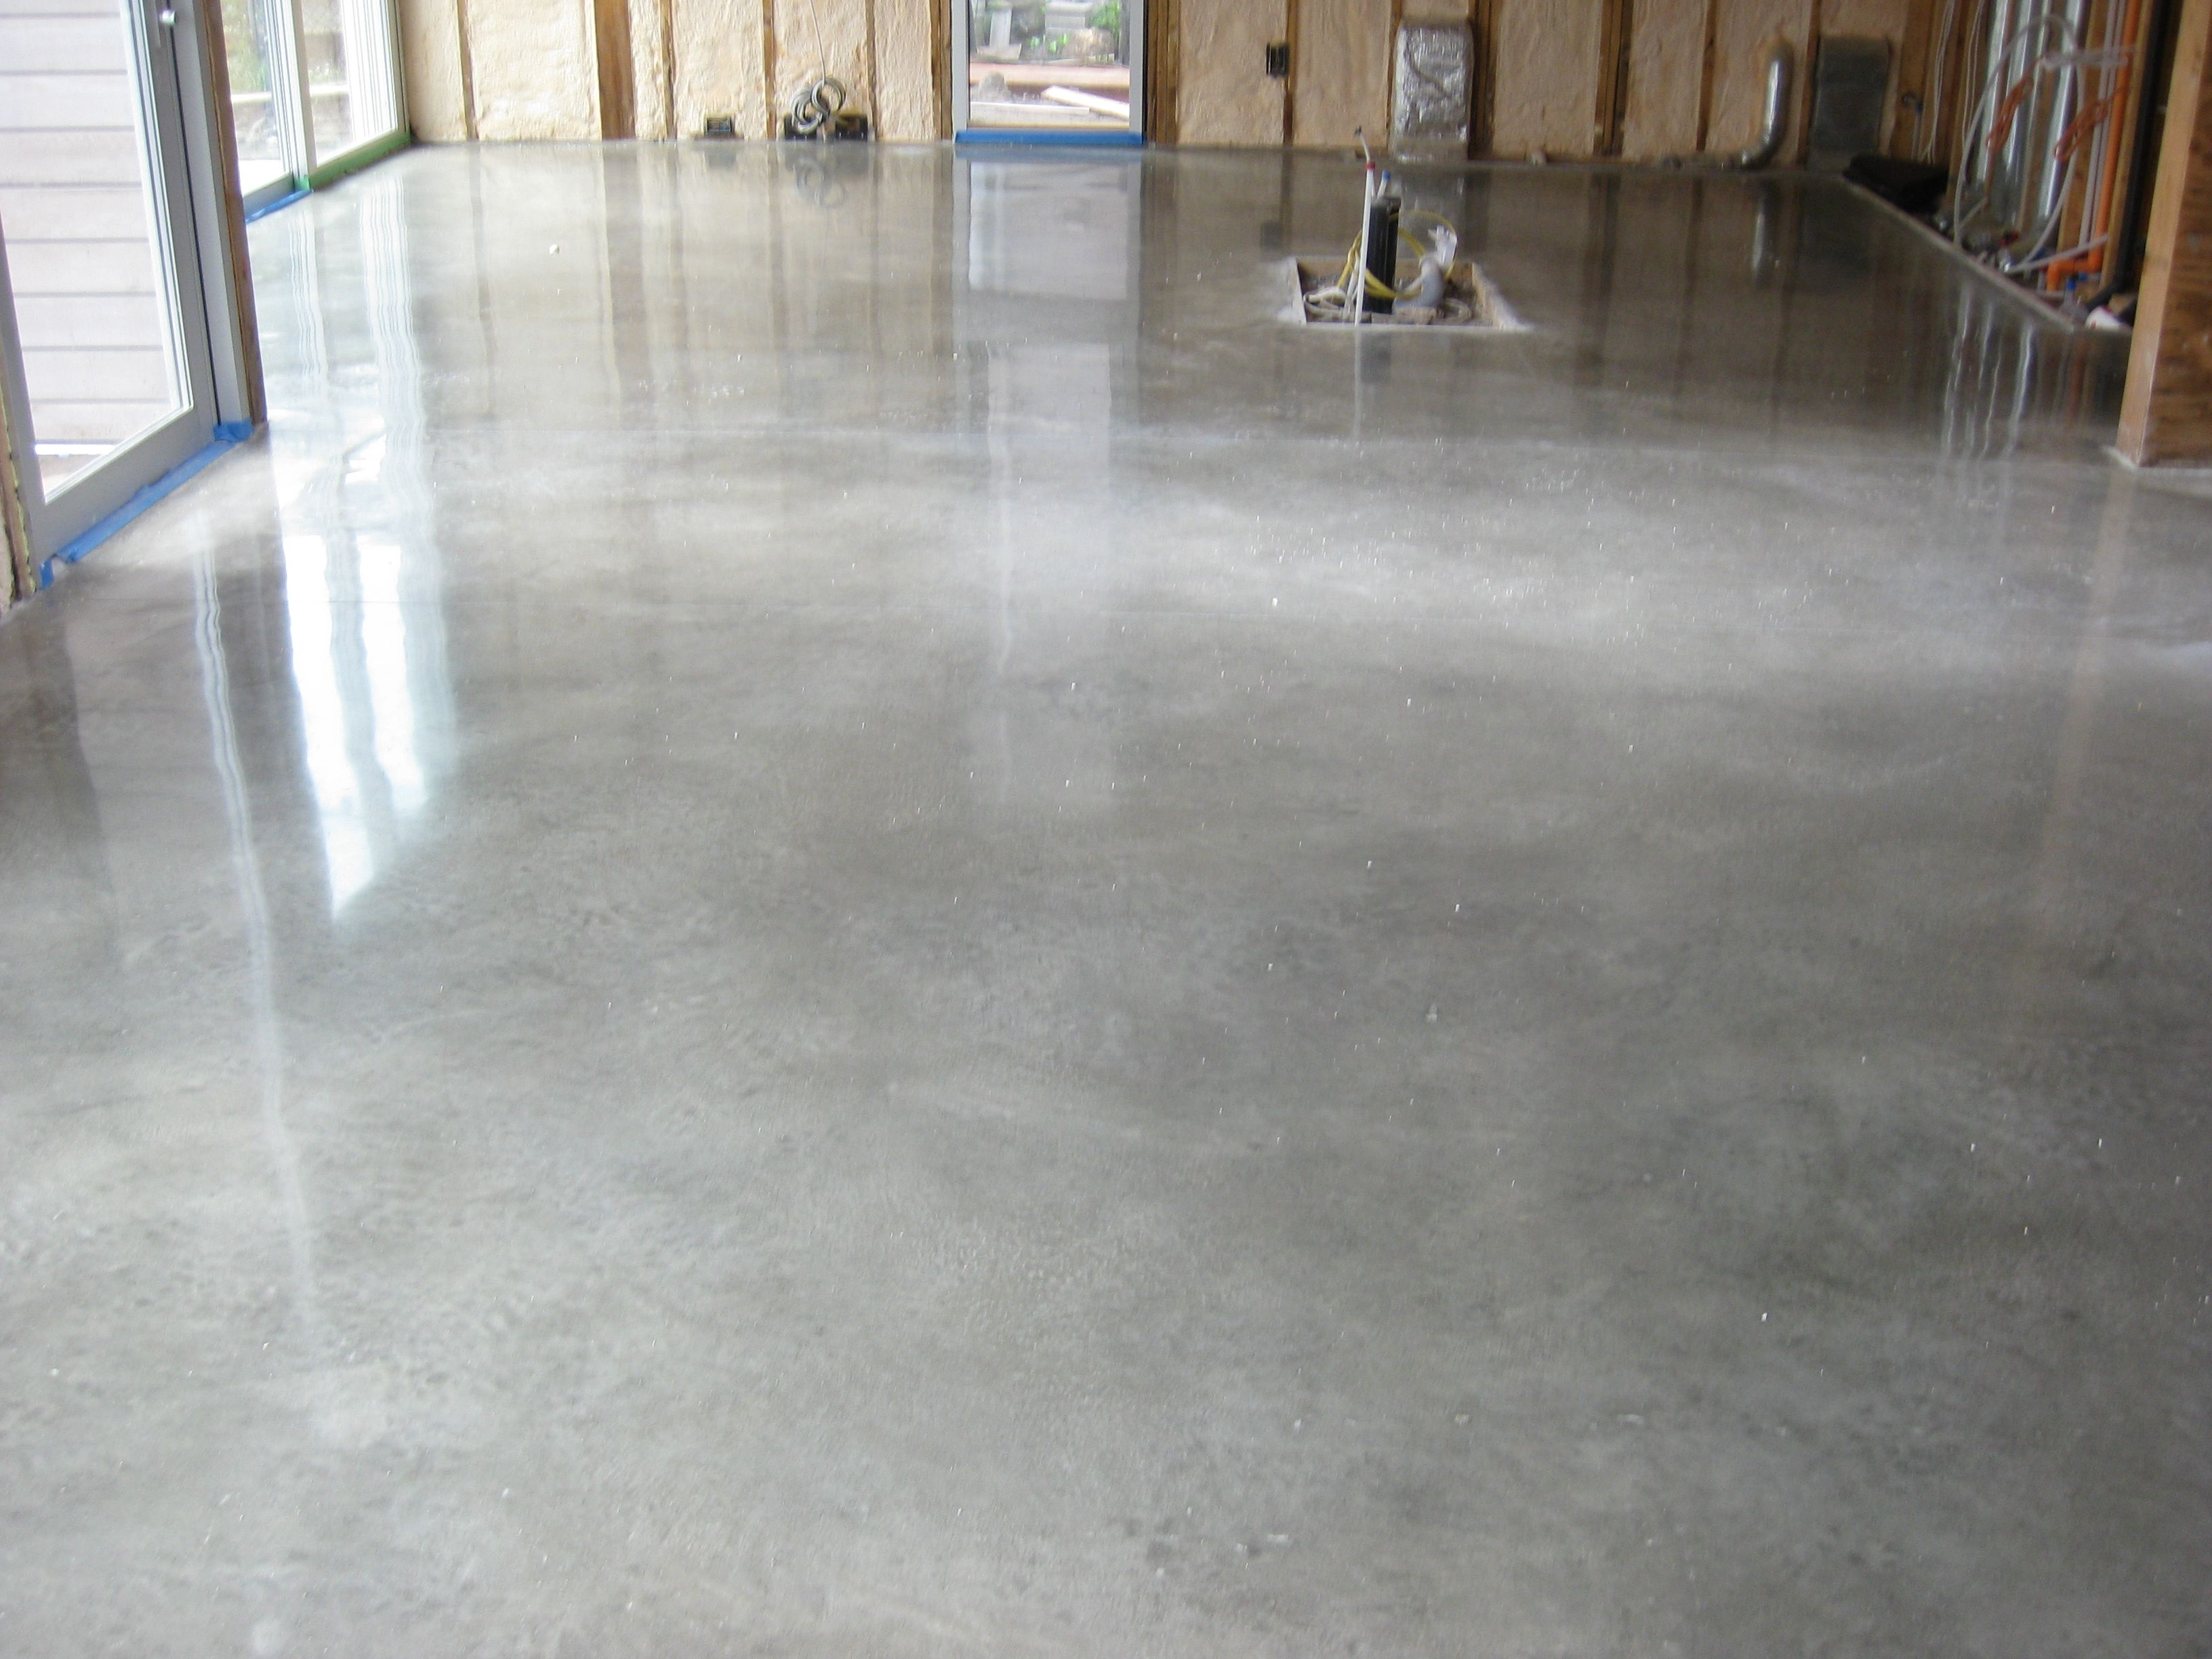 polishing leveling concrete nj floor epoxy makeover coating floors self polished cocrete